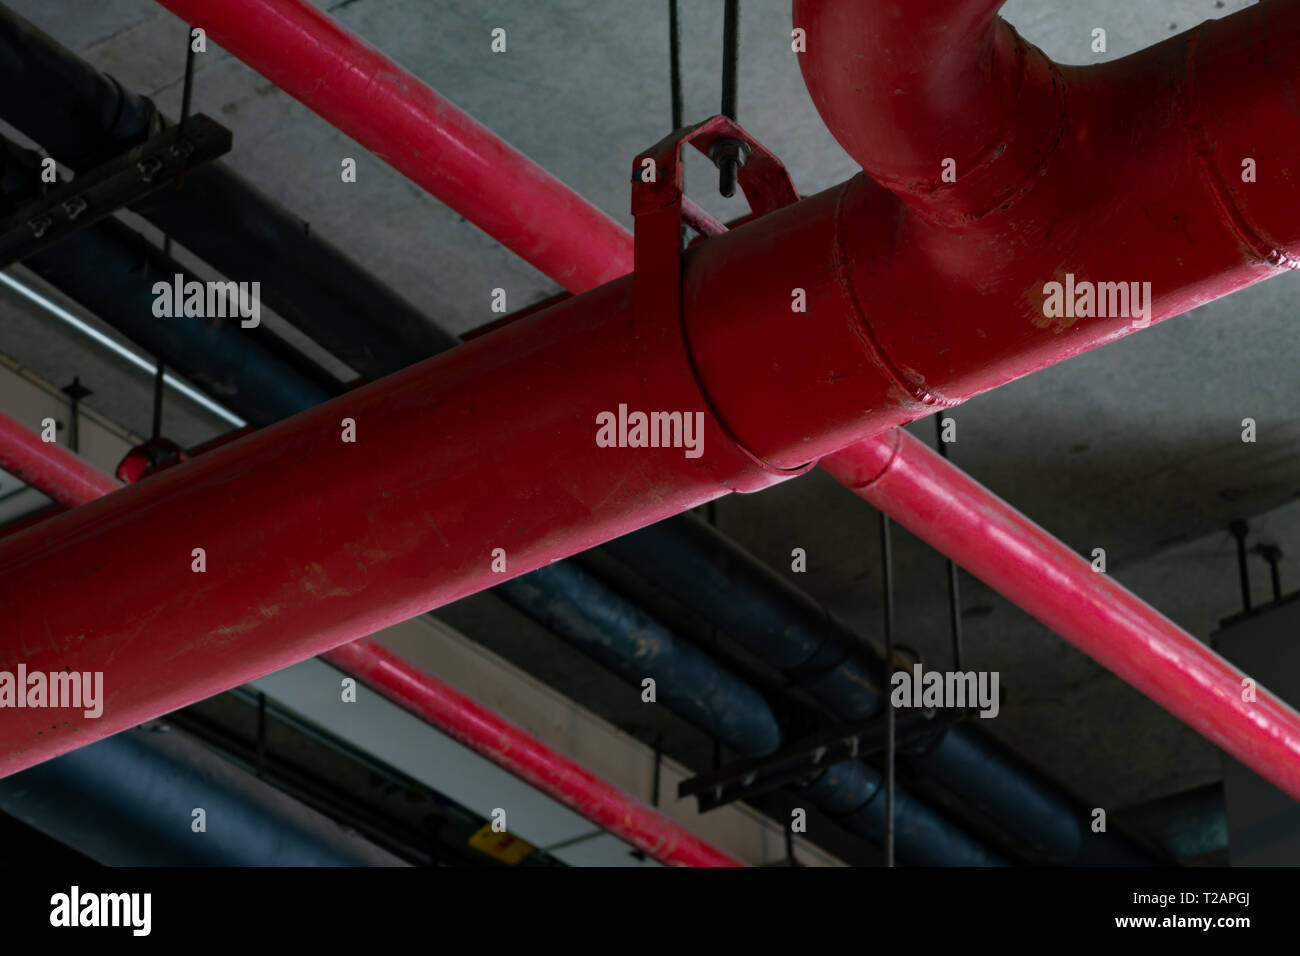 Fire sprinkler system with red pipes hanging from ceiling inside